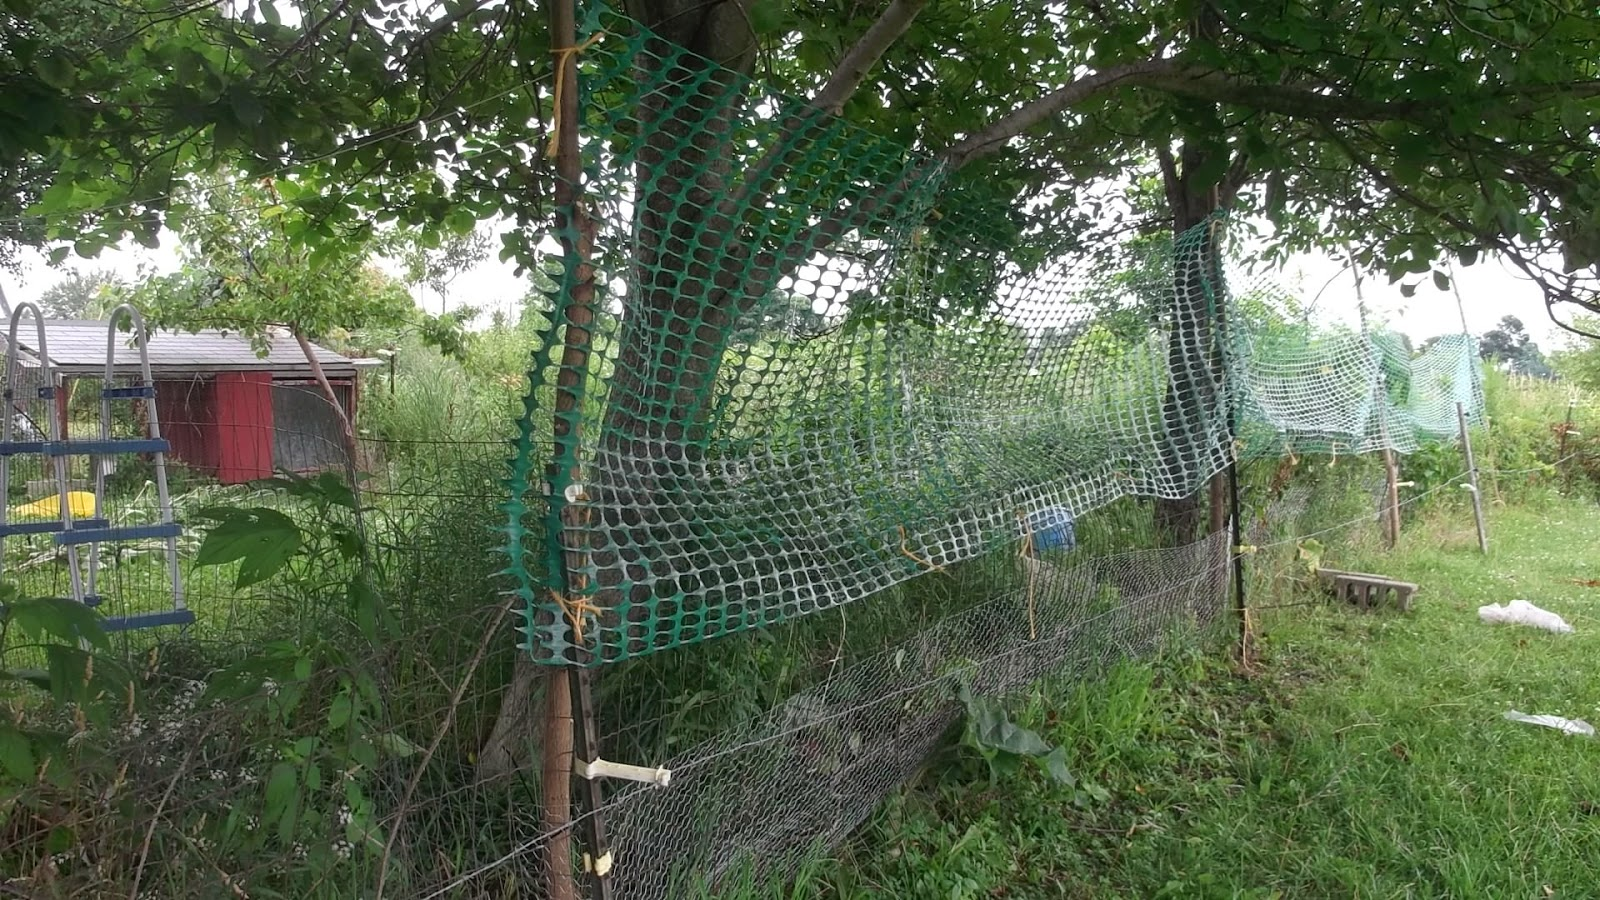 Where to Buy Plastic Snow Fence